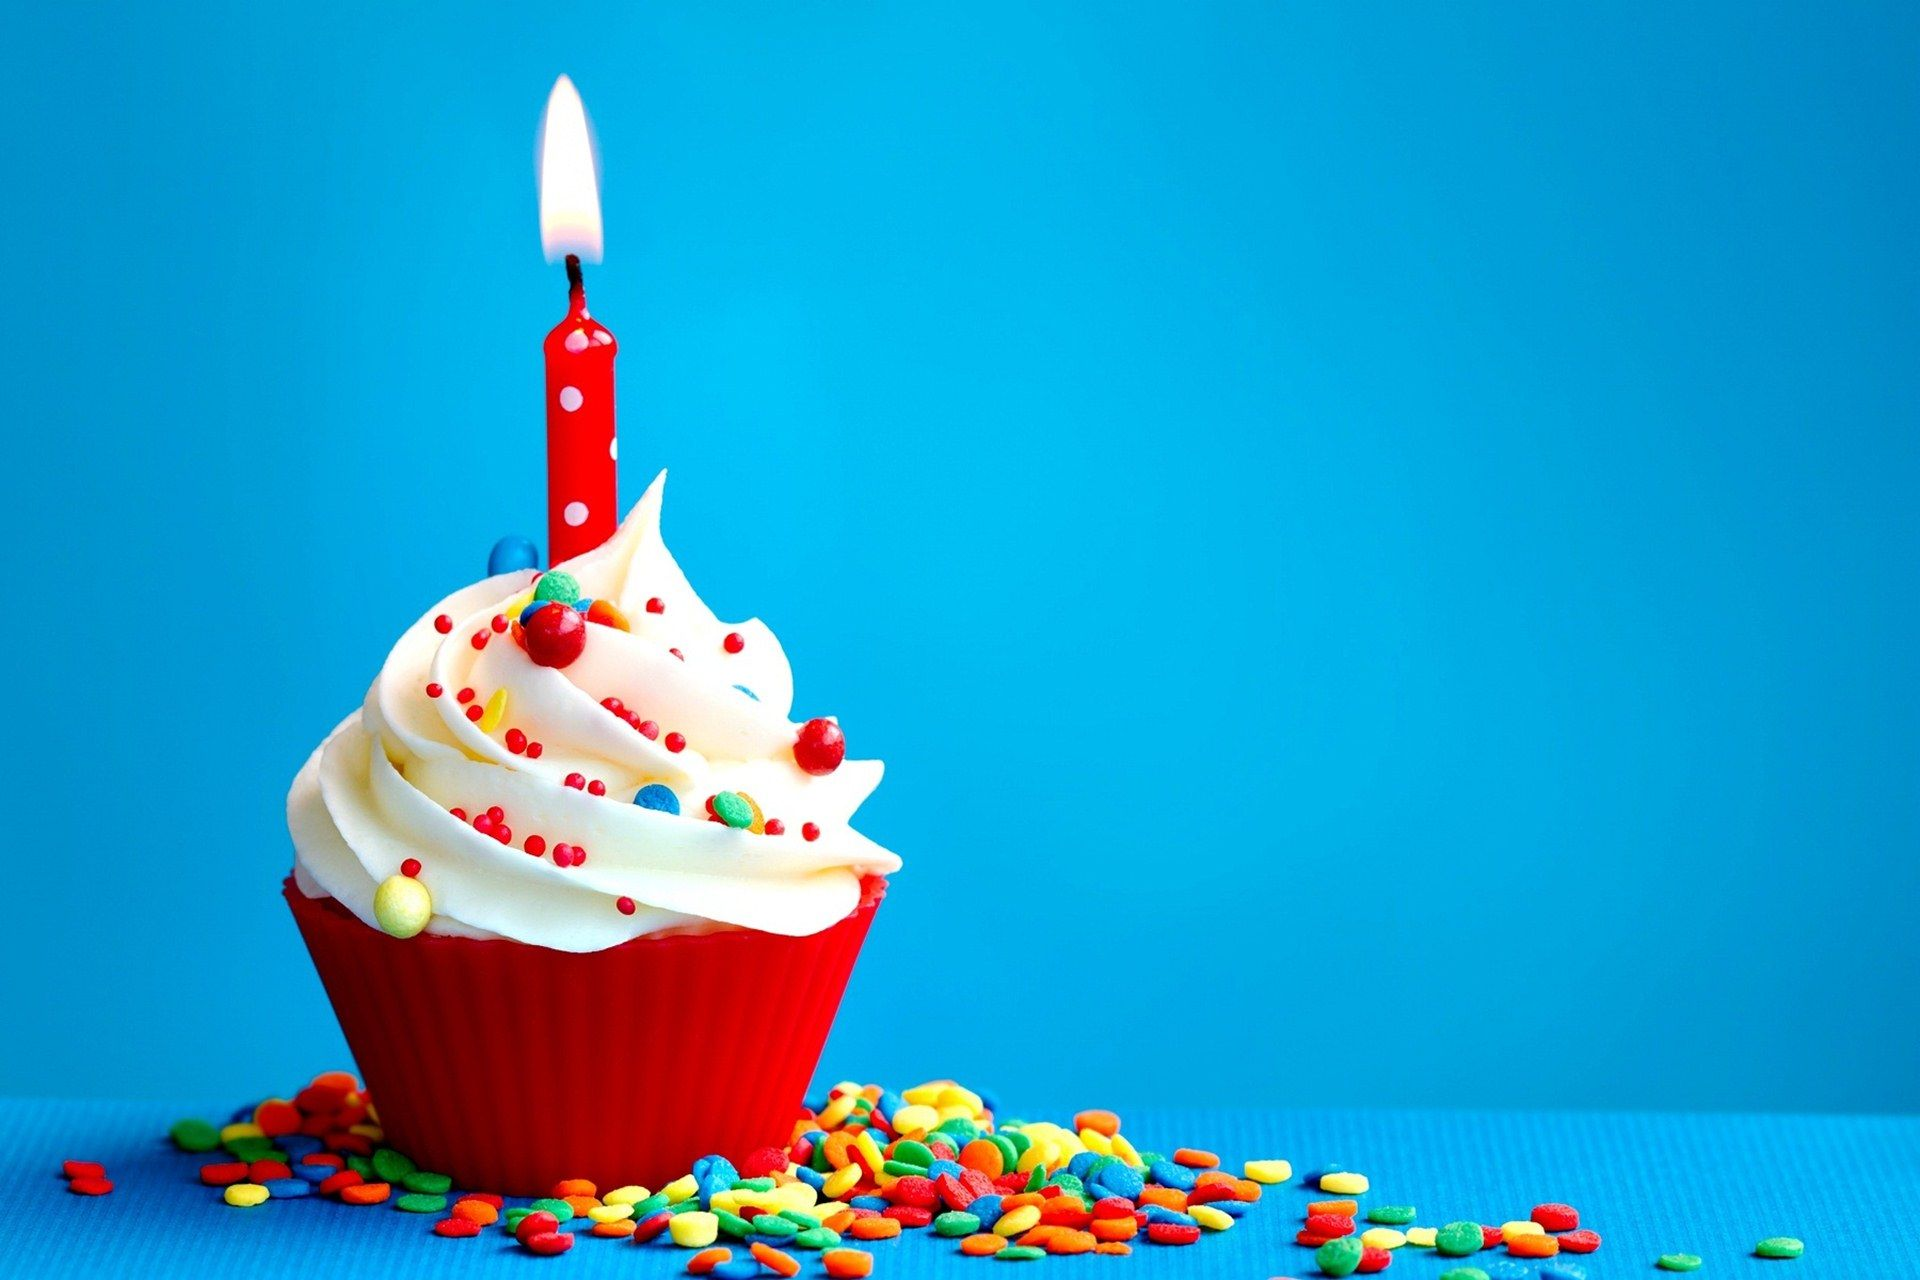 Happy Birthday Wallpapers – A Wallpaper For Every Occasion